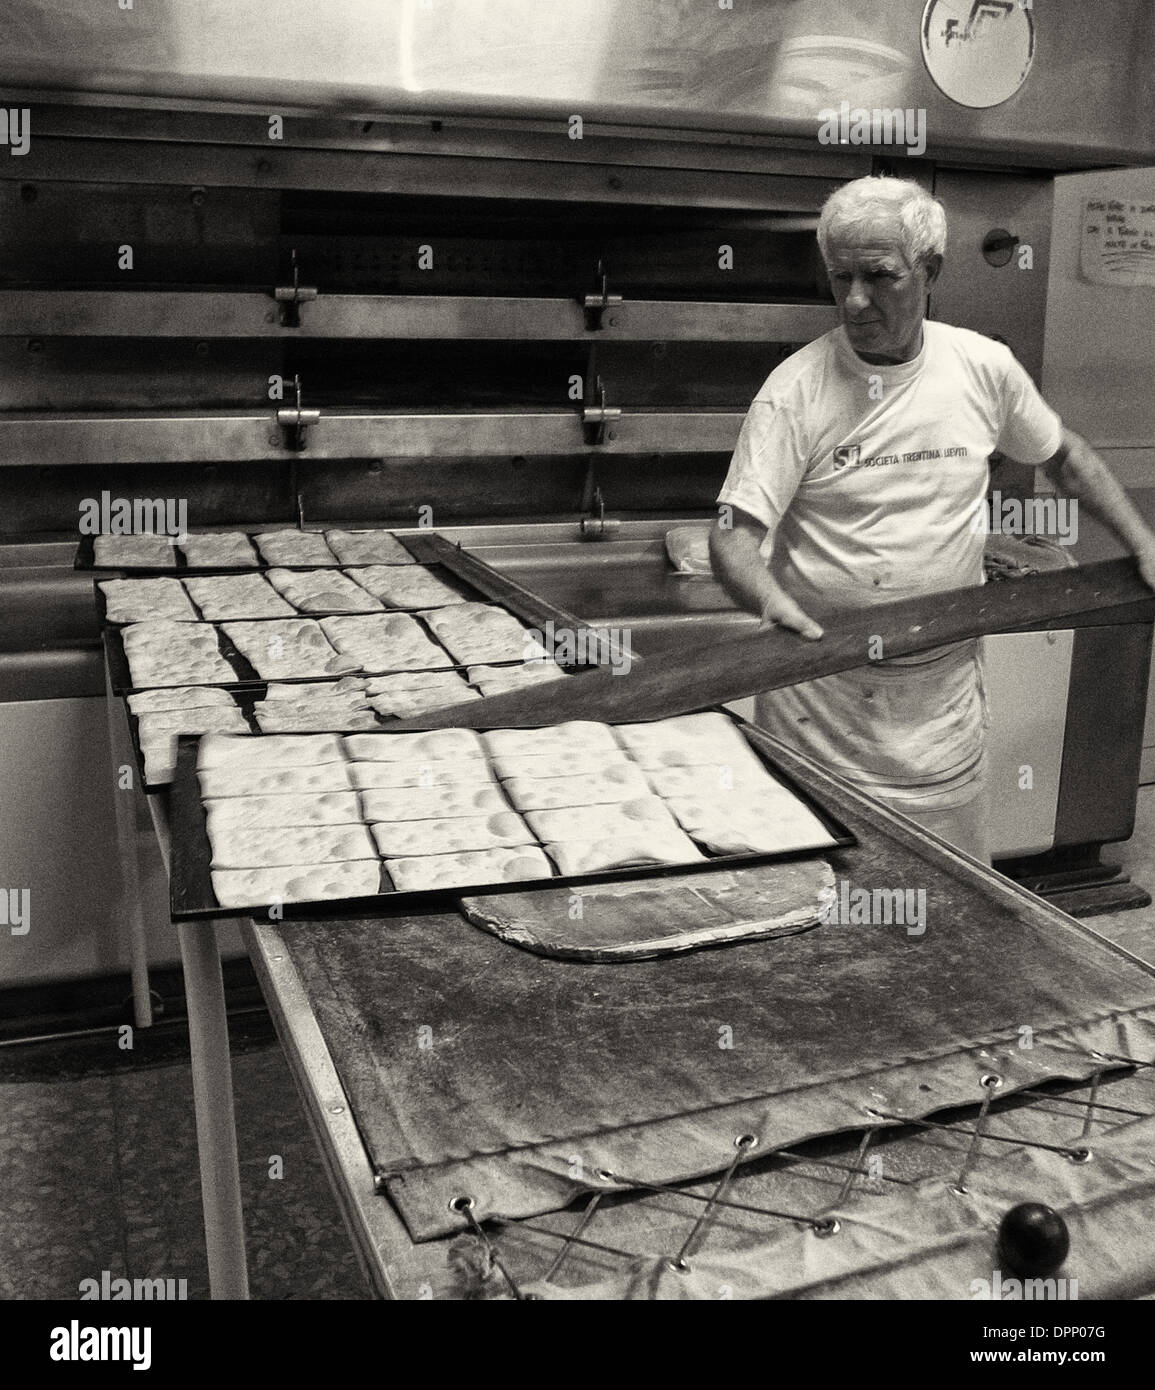 Focaccia being made in Ferrara bakery - Stock Image